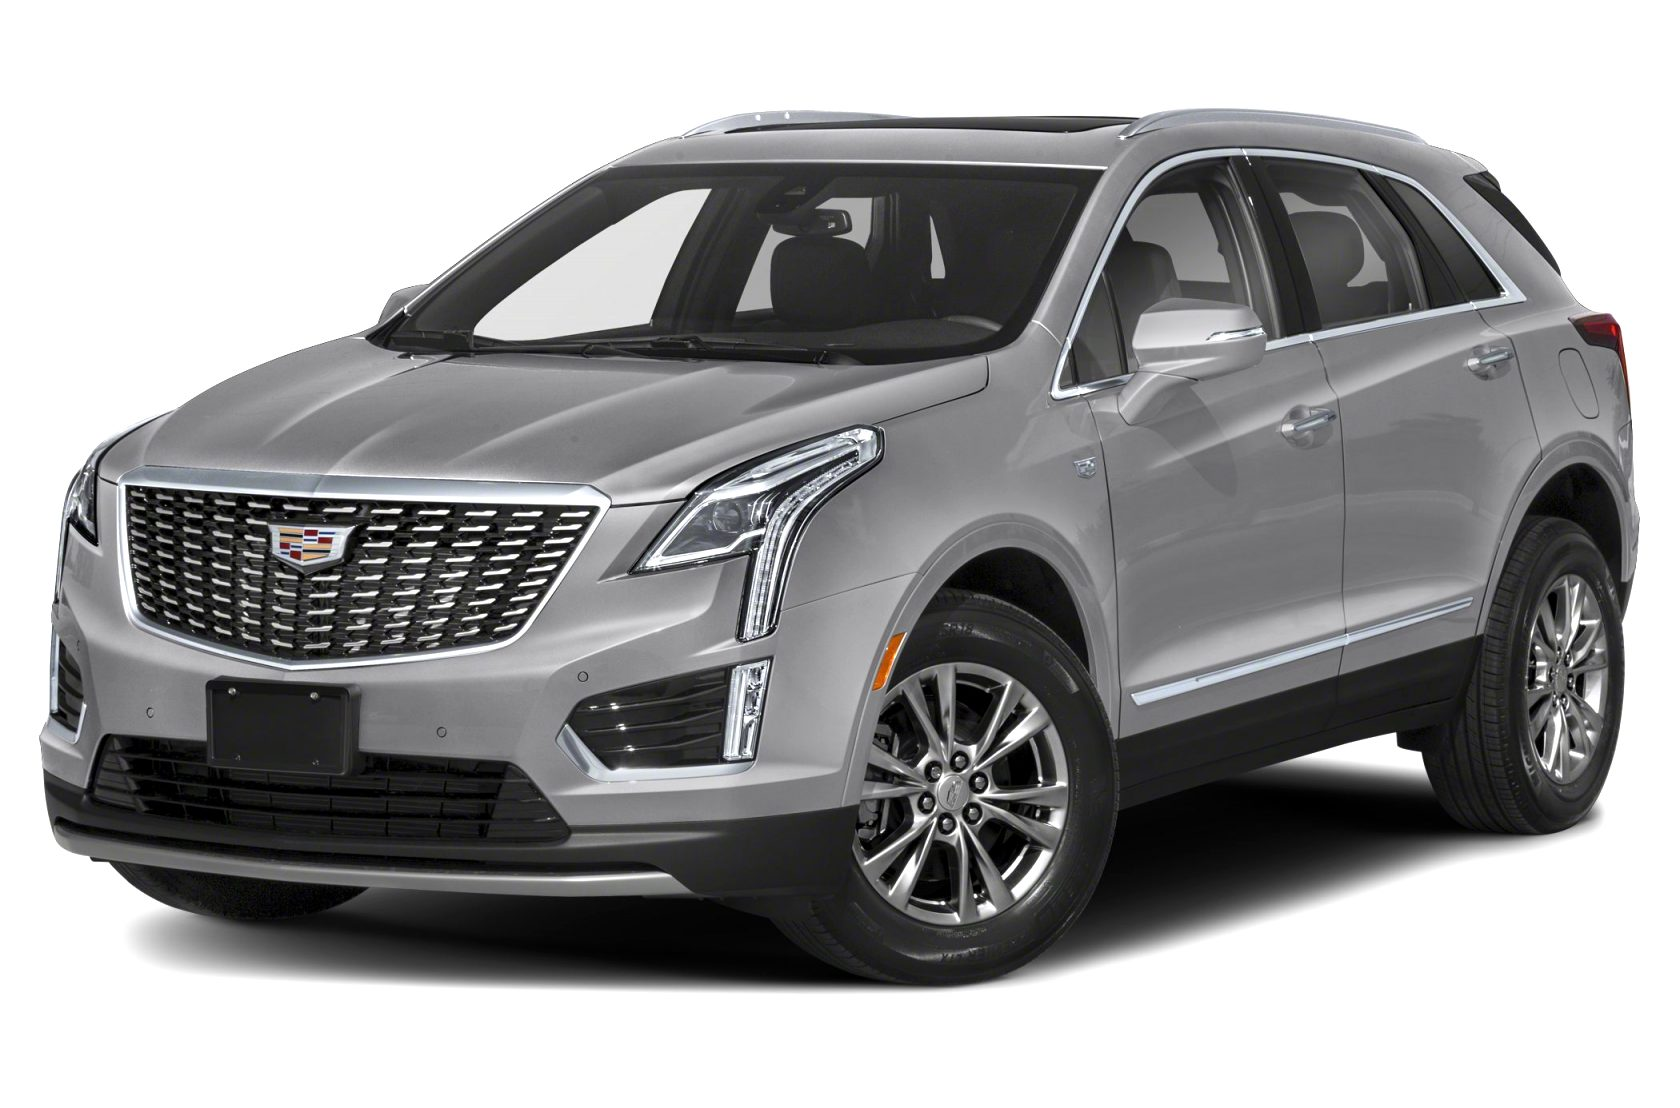 cadillac lease pull ahead 2021 Review and Release date